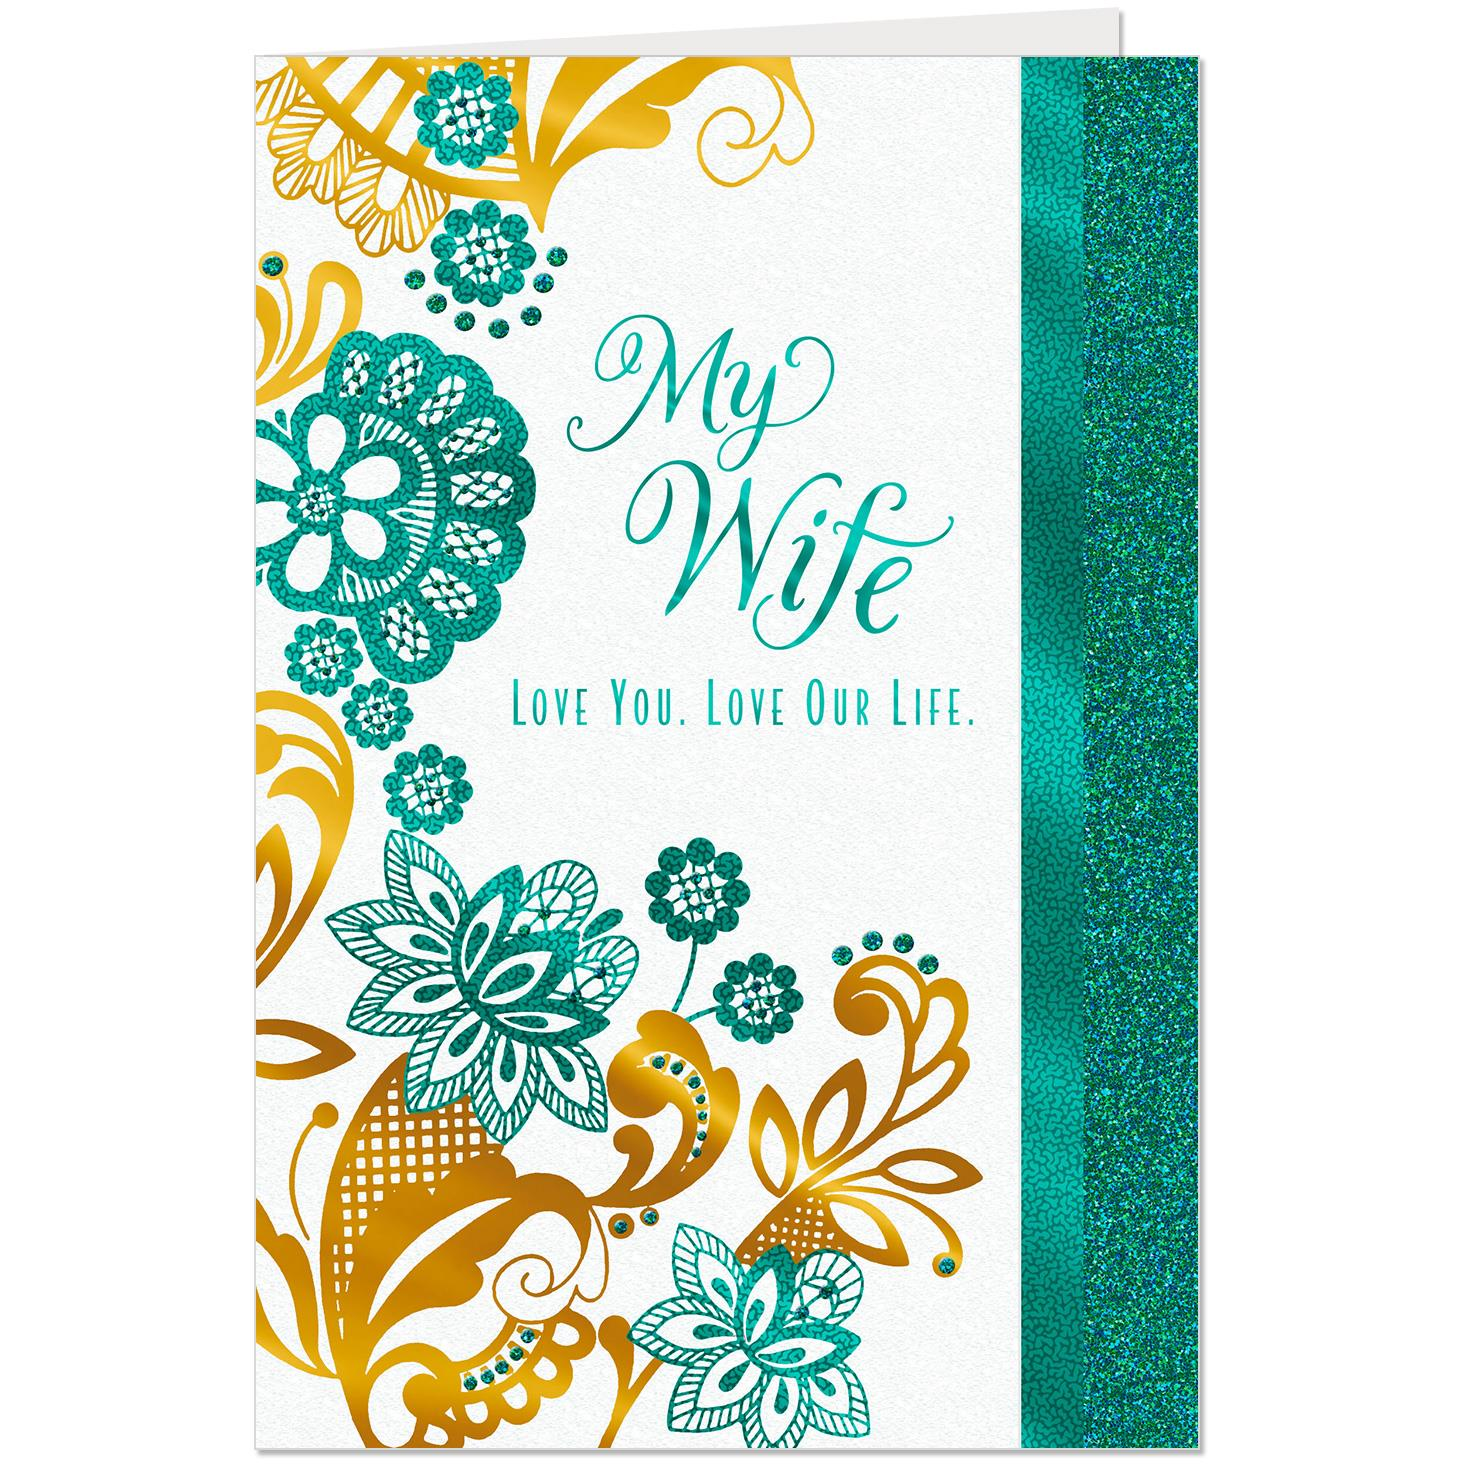 Love You, Love Our Life Anniversary Card For Wife